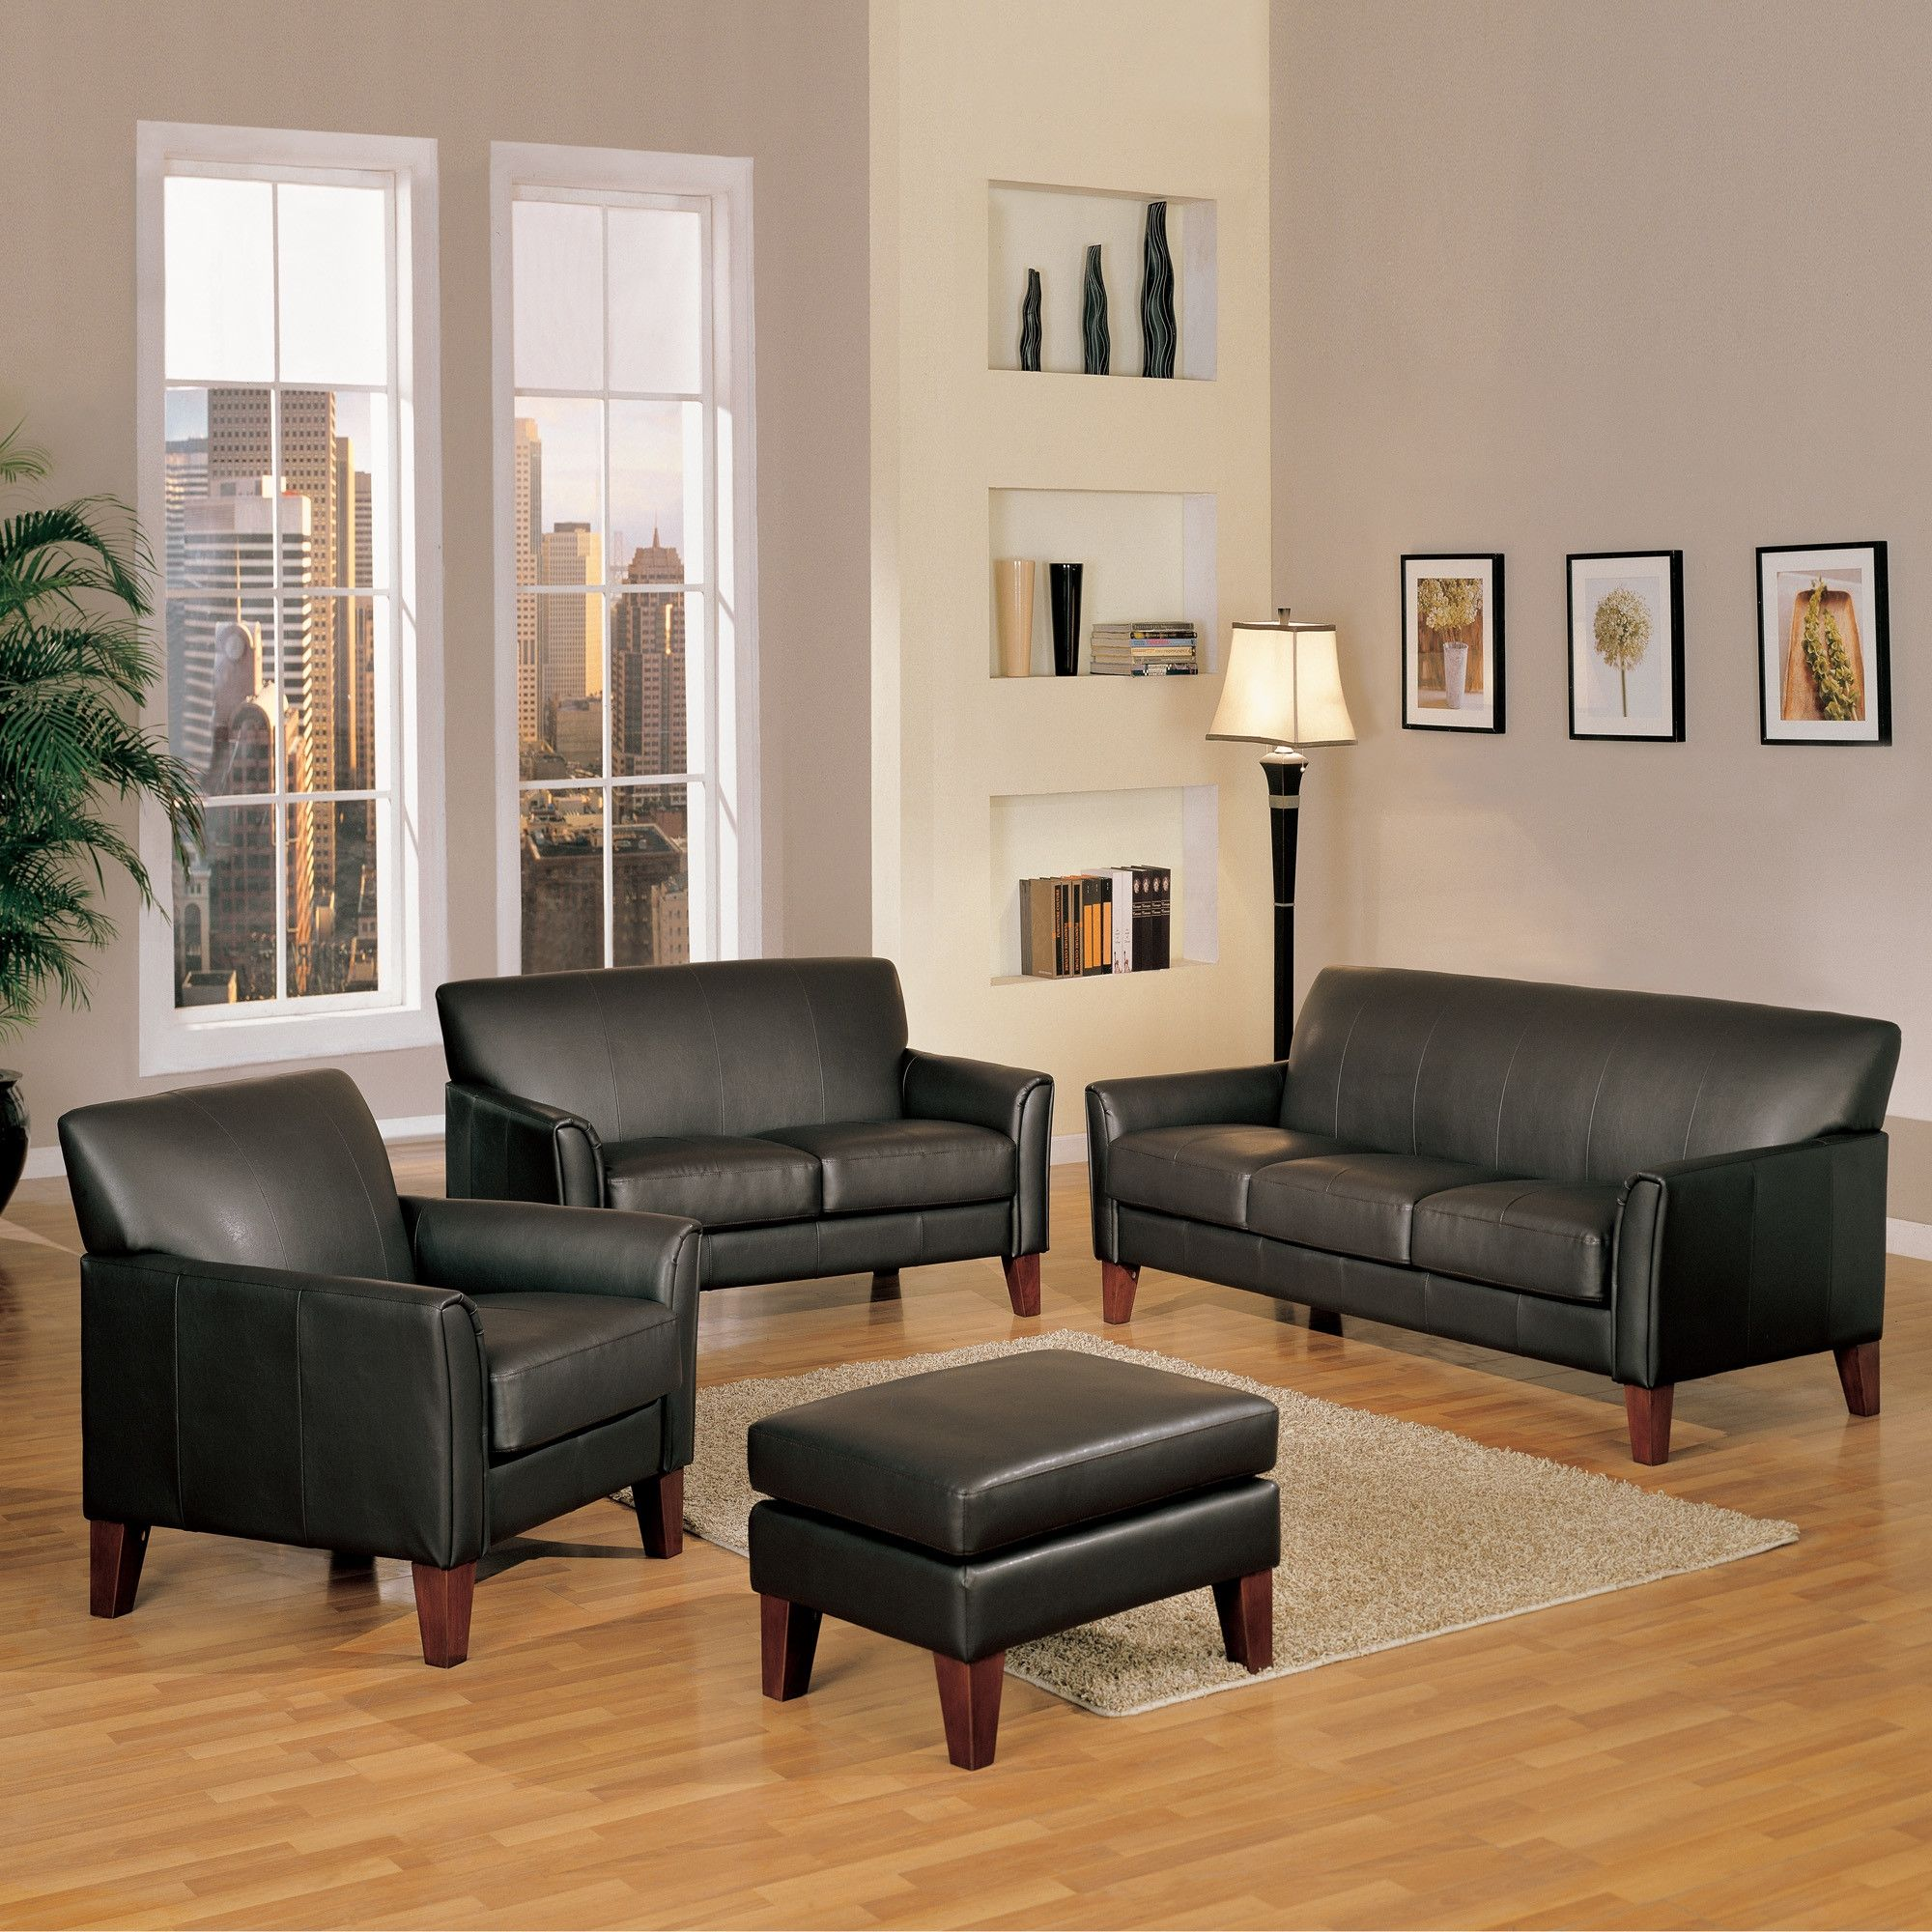 3 Piece Living Room Set Under $500  Httpintrinsiclifedesign Brilliant Cheap Living Room Sets Under $500 Design Ideas